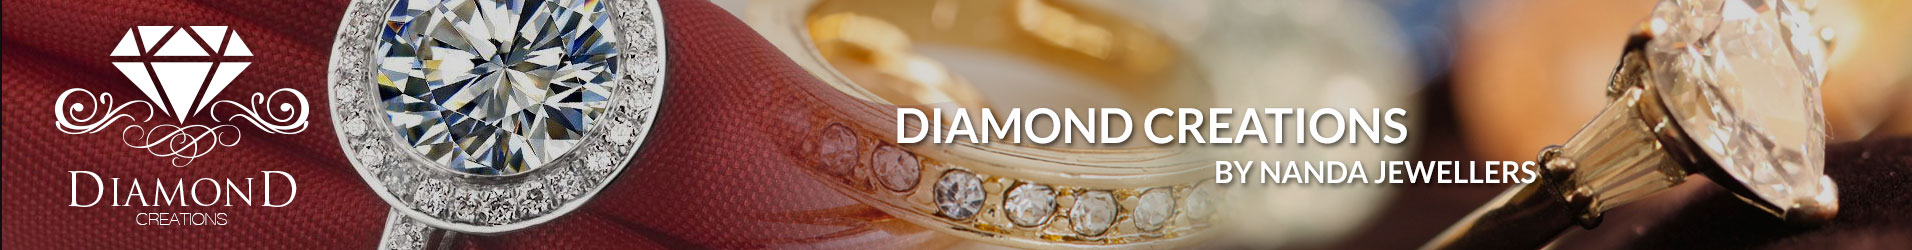 nanda_diamond_banner